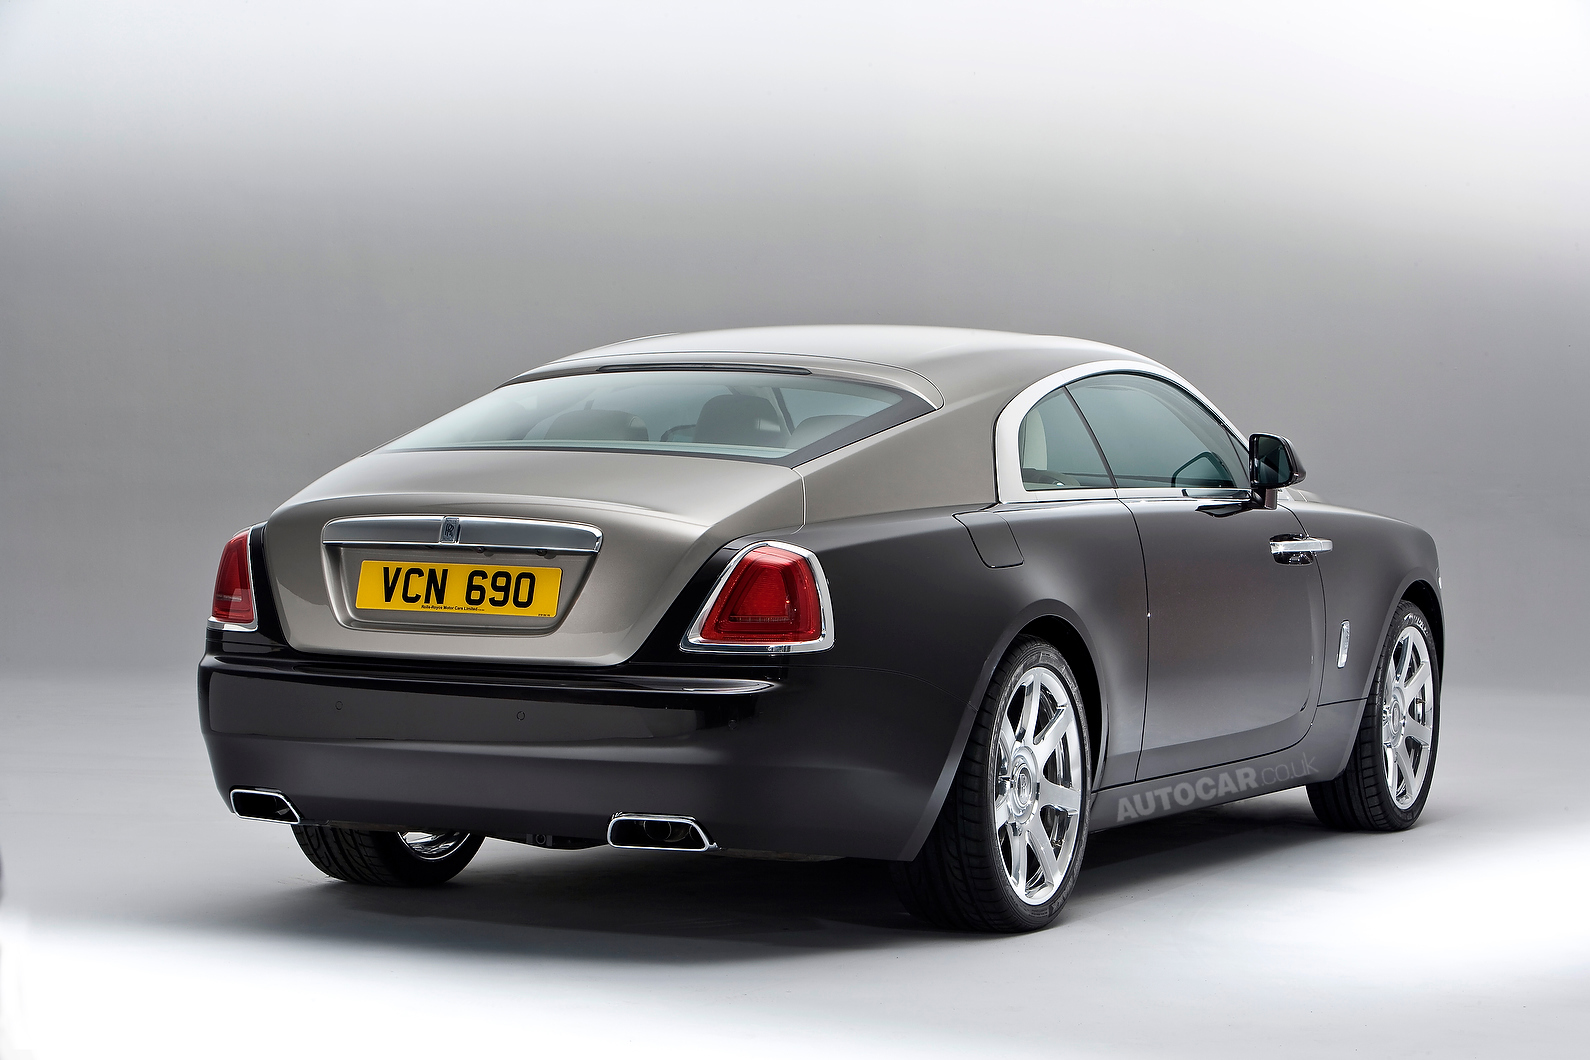 new york motor show rolls royce wraith autocar. Black Bedroom Furniture Sets. Home Design Ideas